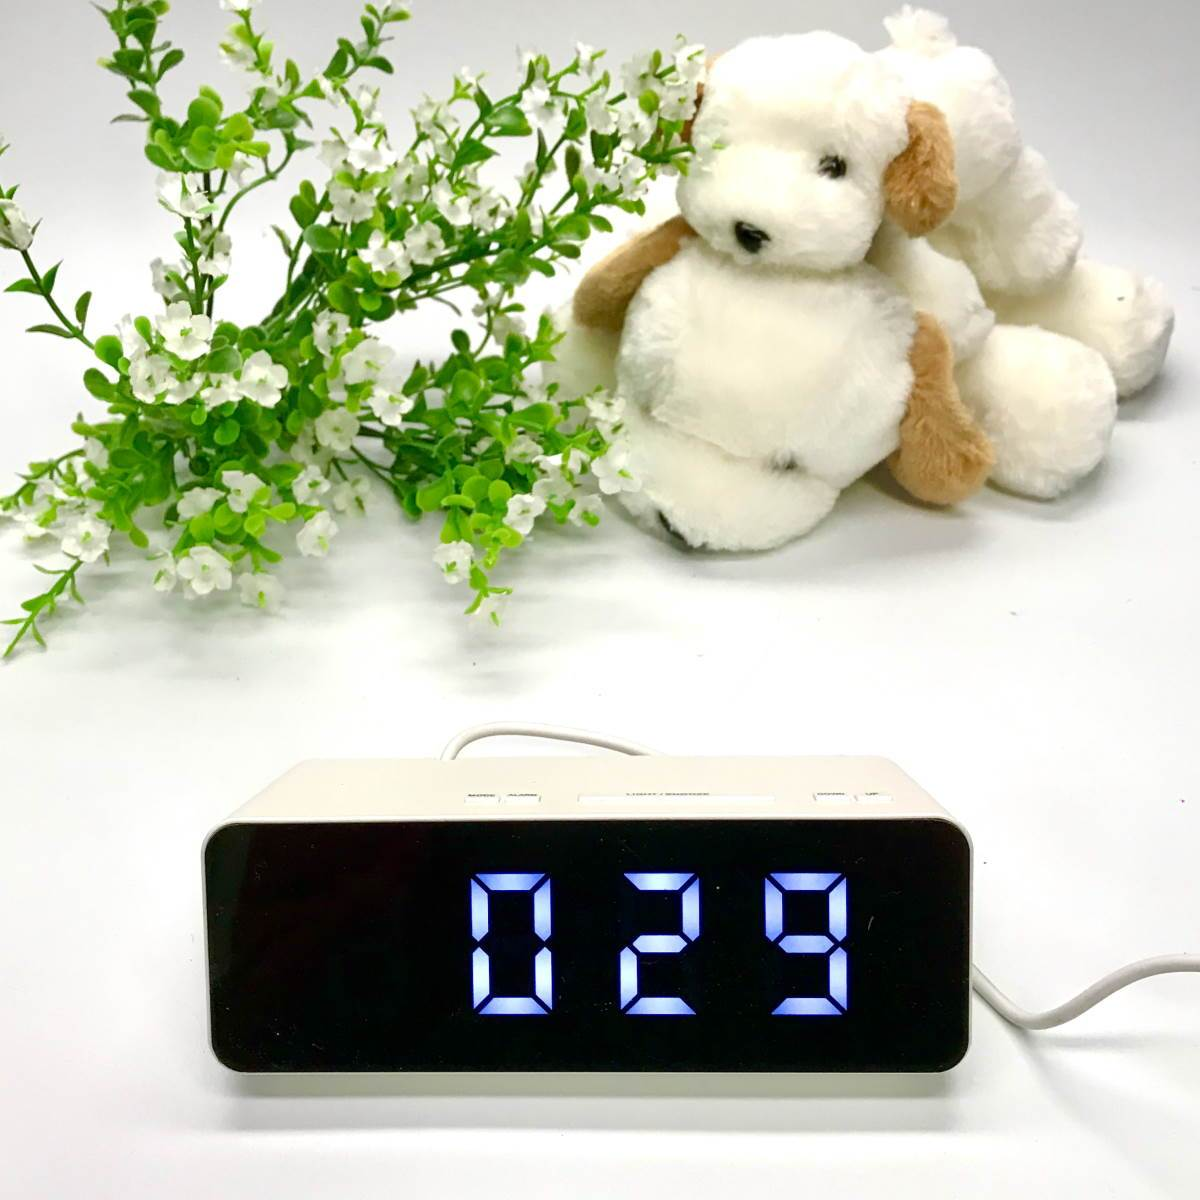 Checkmate Holland Multifunction Digital Alarm Clock White 16cm VGW-8211-WHI 1